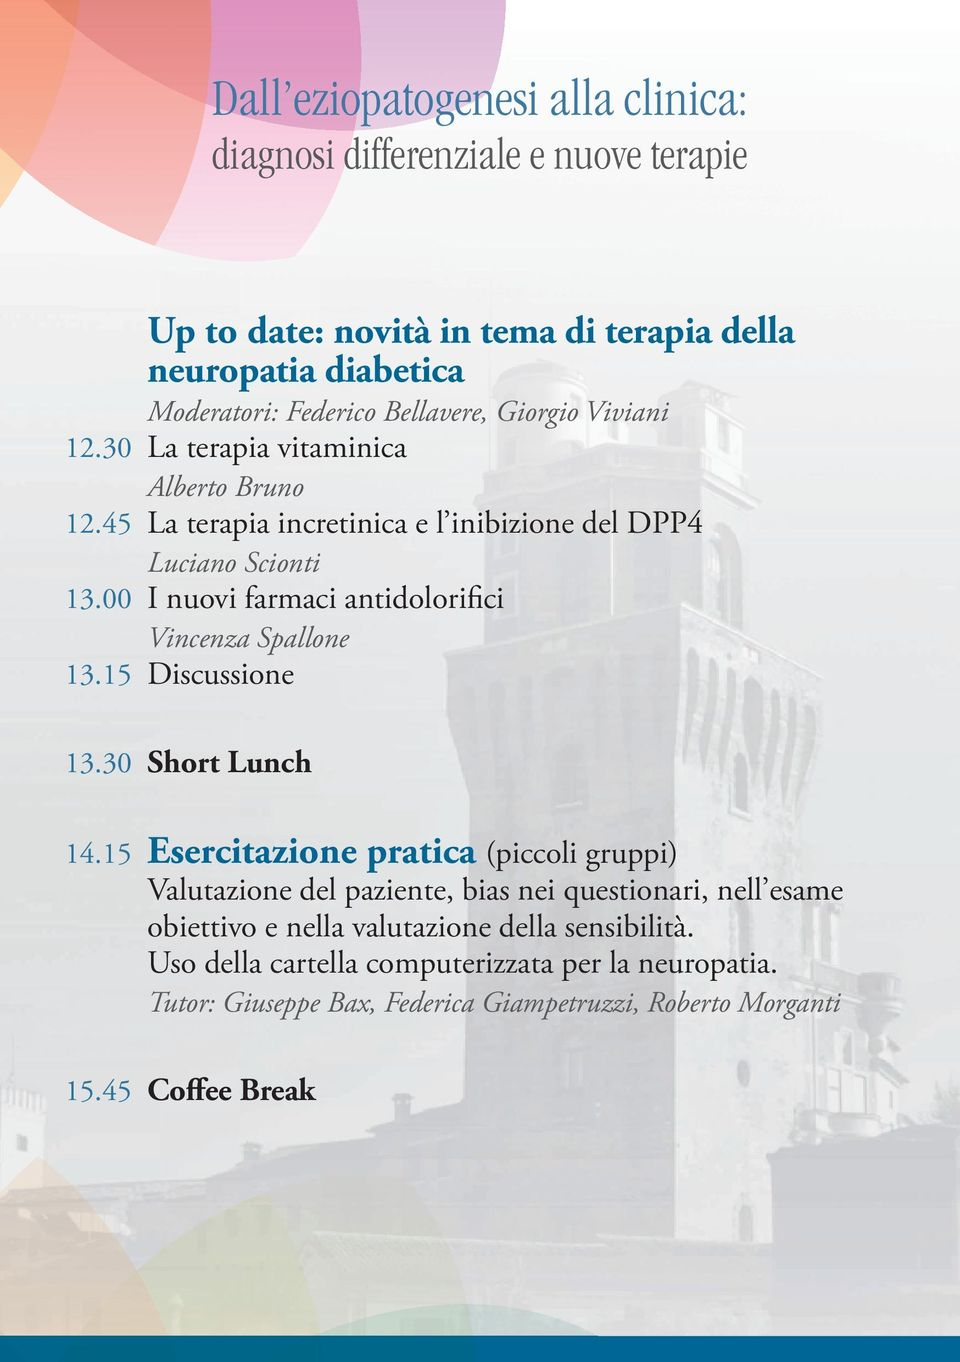 00 I nuovi farmaci antidolorifici Vincenza Spallone 13.15 Discussione 13.30 Short Lunch 14.